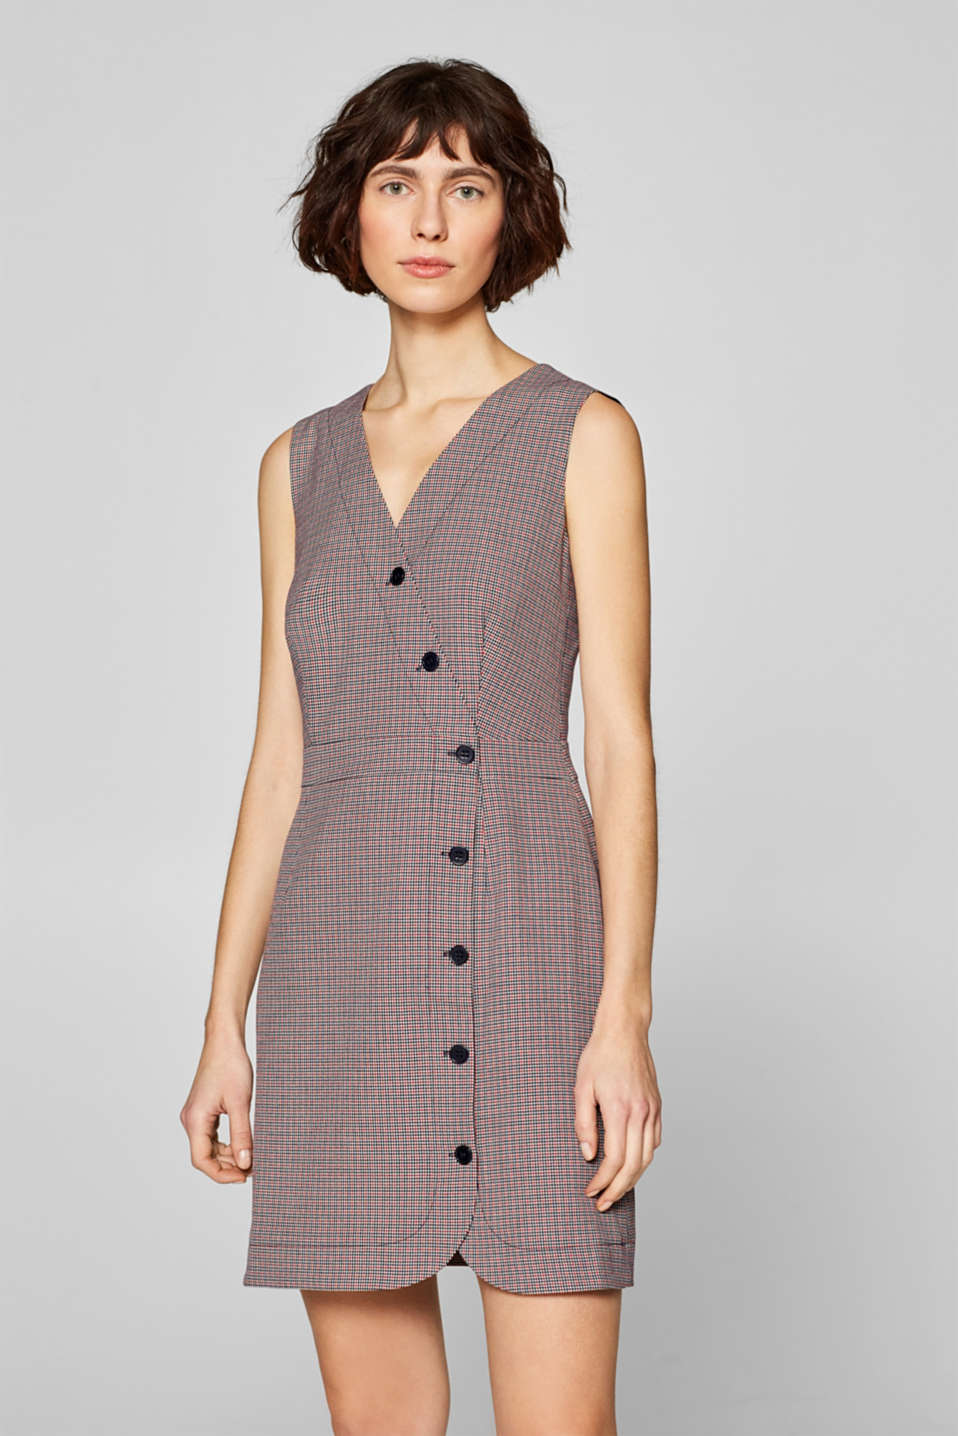 edc - Sleeveless dress with a houndstooth check pattern